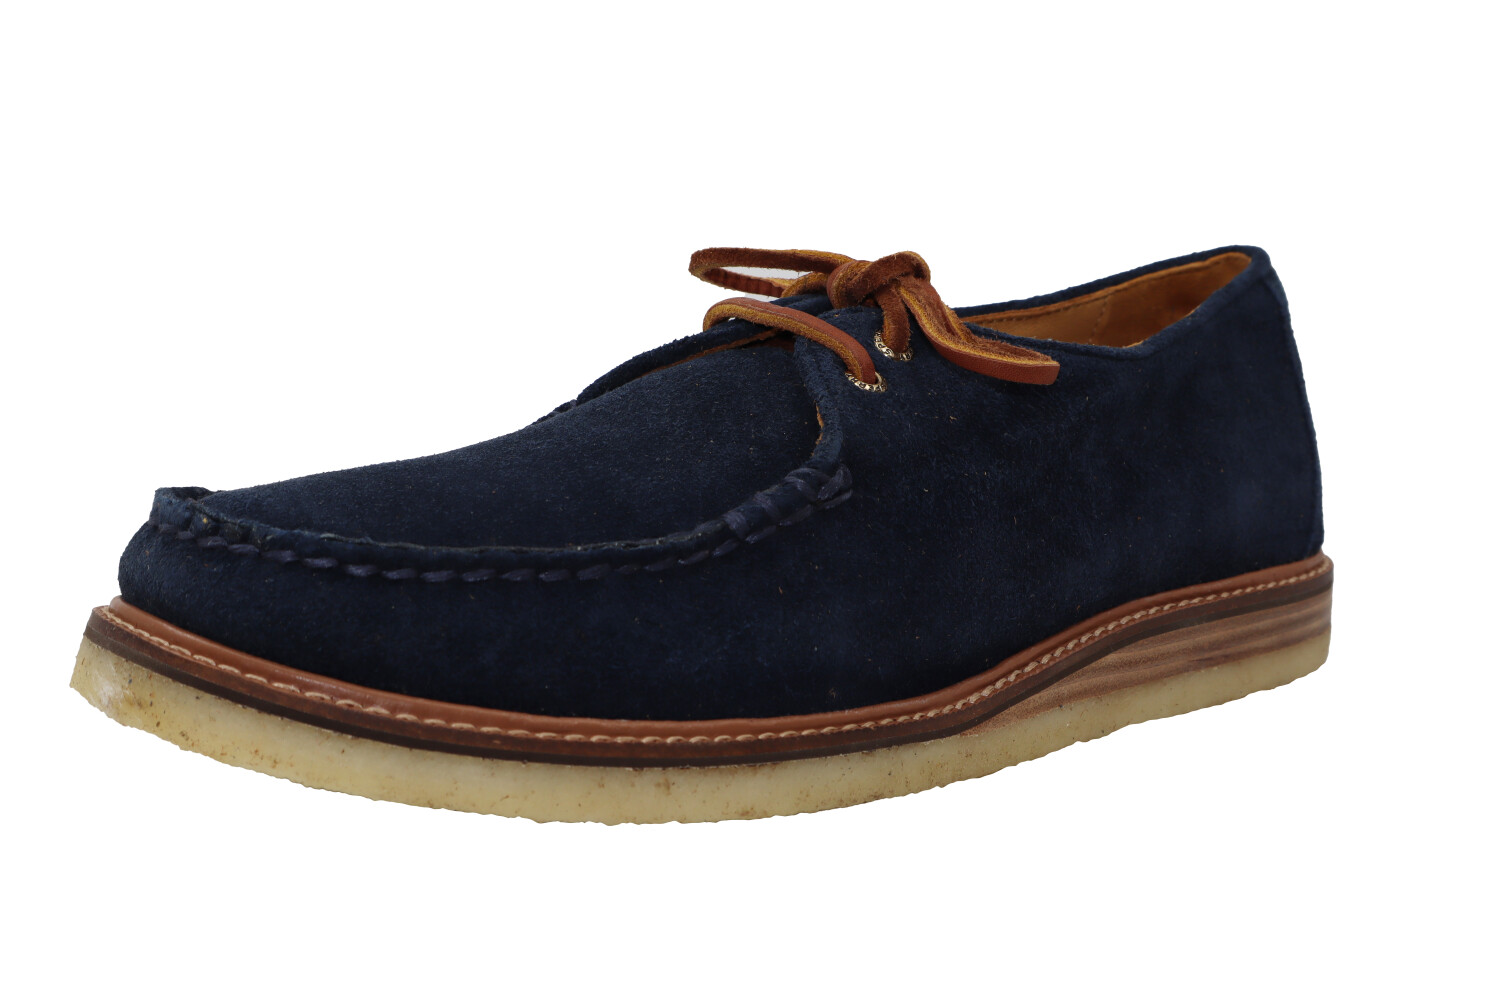 Sperry Men's Gold Cup Captains Oxford Blue Leather Loafers & Slip-On - 12M